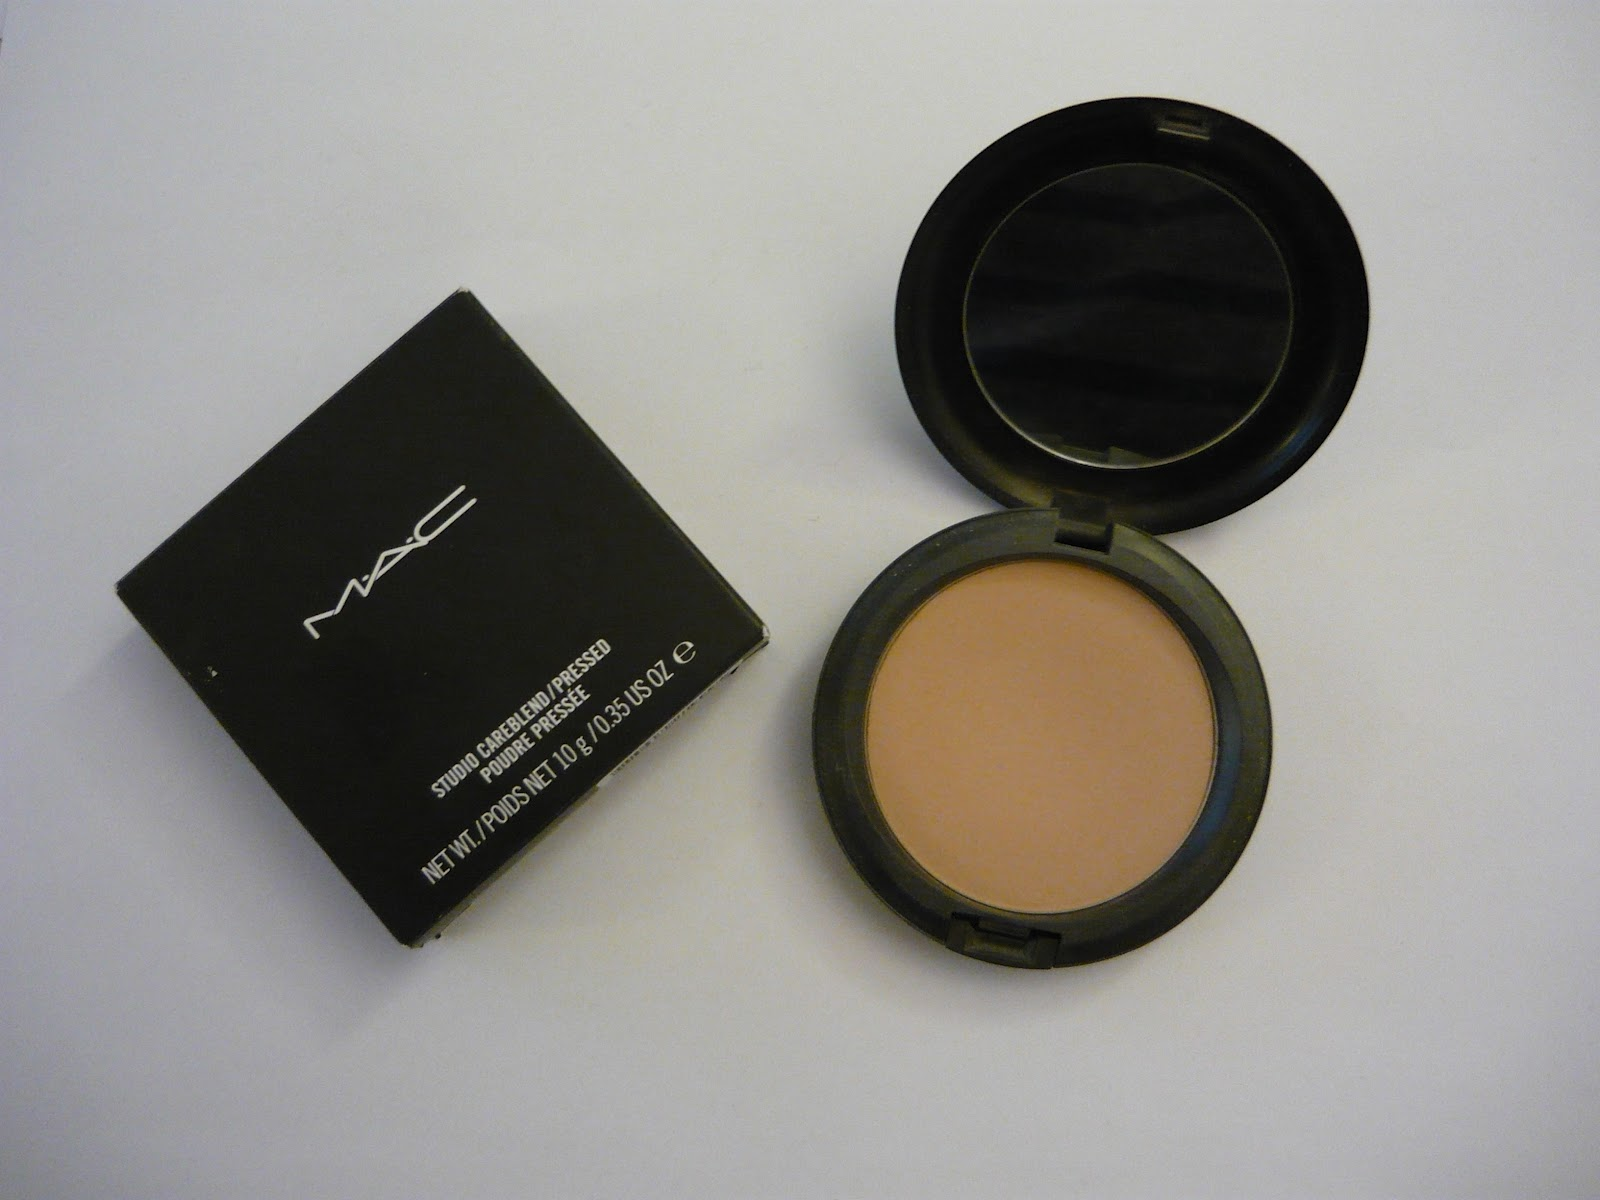 Beauty comes from within: MAC Studio Careblend Pressed Powder